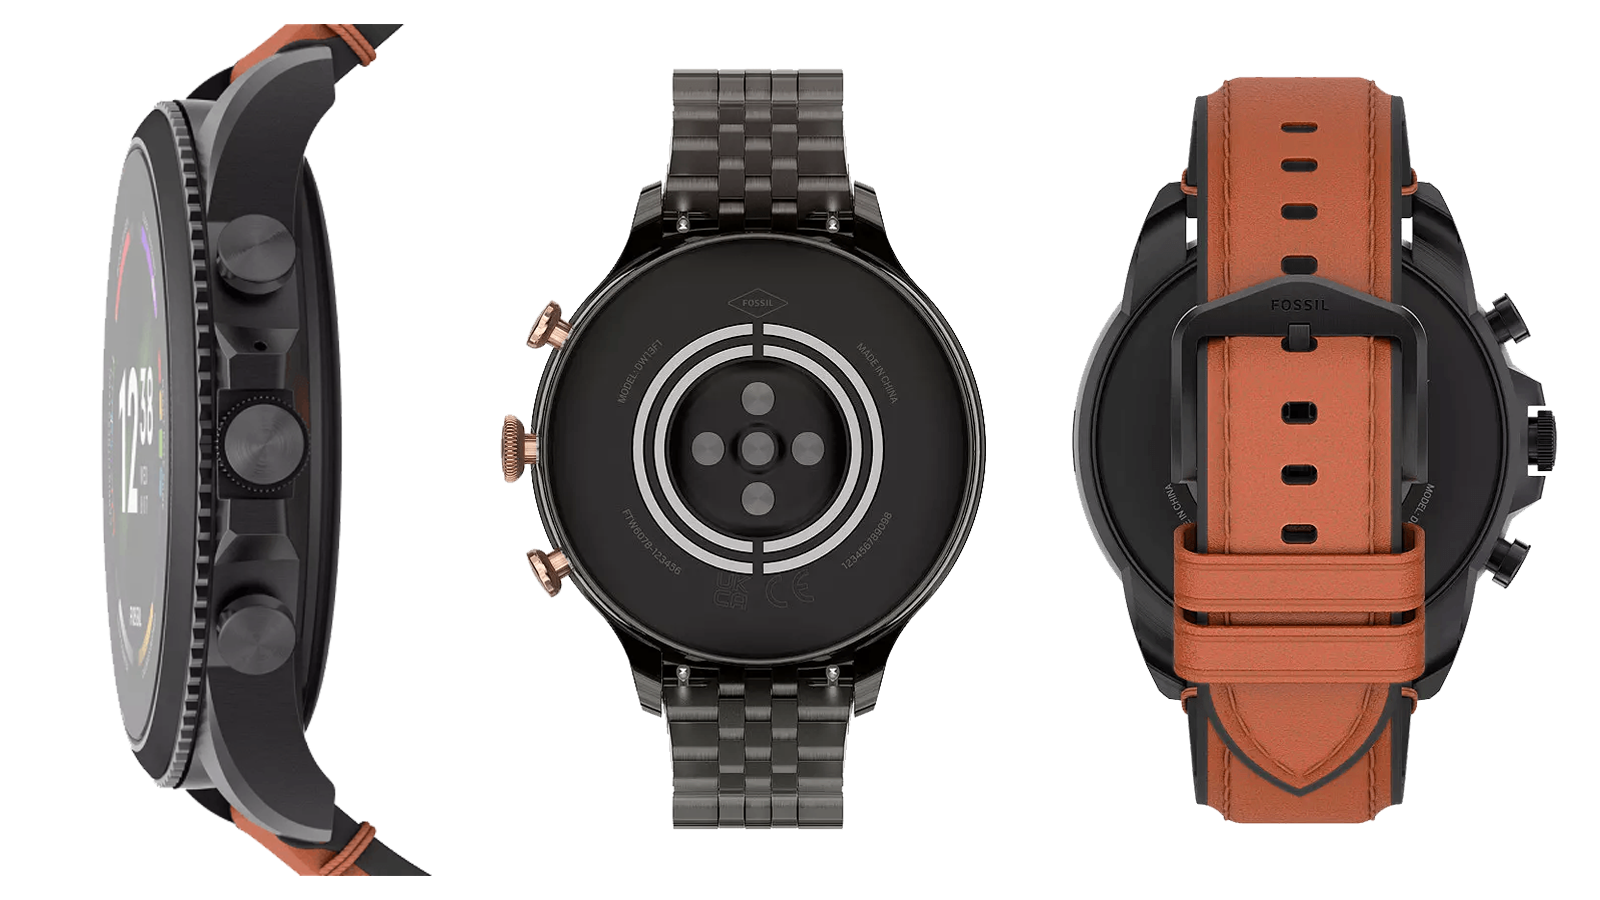 Side, rear, and rear with wristband views of the Fossil Gen 6 smartwatch